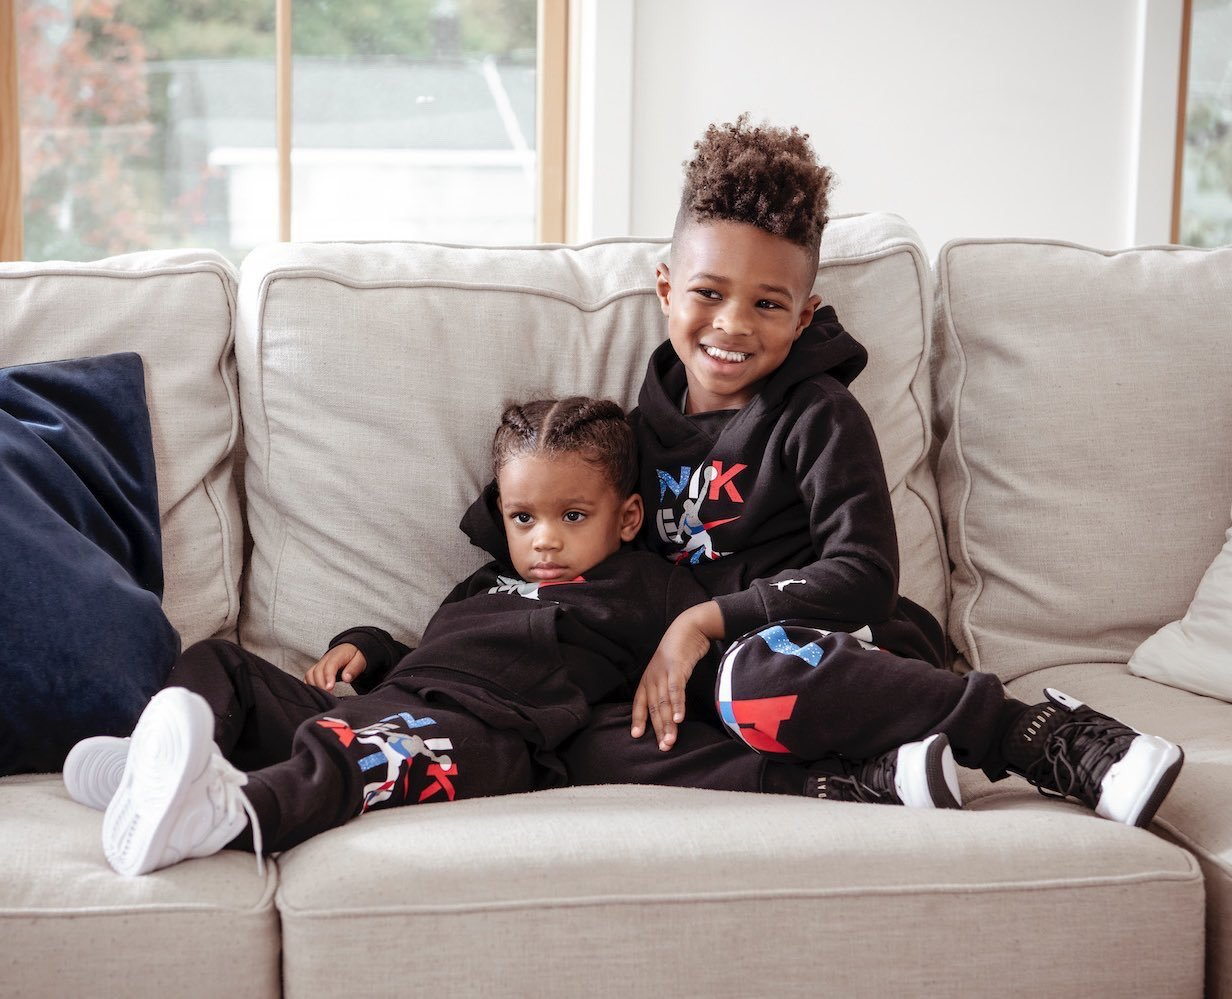 These 2 are tight like glue ❤️ 📸: Justin Gollmer Photography #ciara#sienna wilson#future zahir#russell wilson#thewilsons#love#family#families#familia#grateful#nike#jordans#holiday collection#jordanbrand#finishline#holiday#kids#kidstyle#siblings#siblinglove#bigbroandlilsis